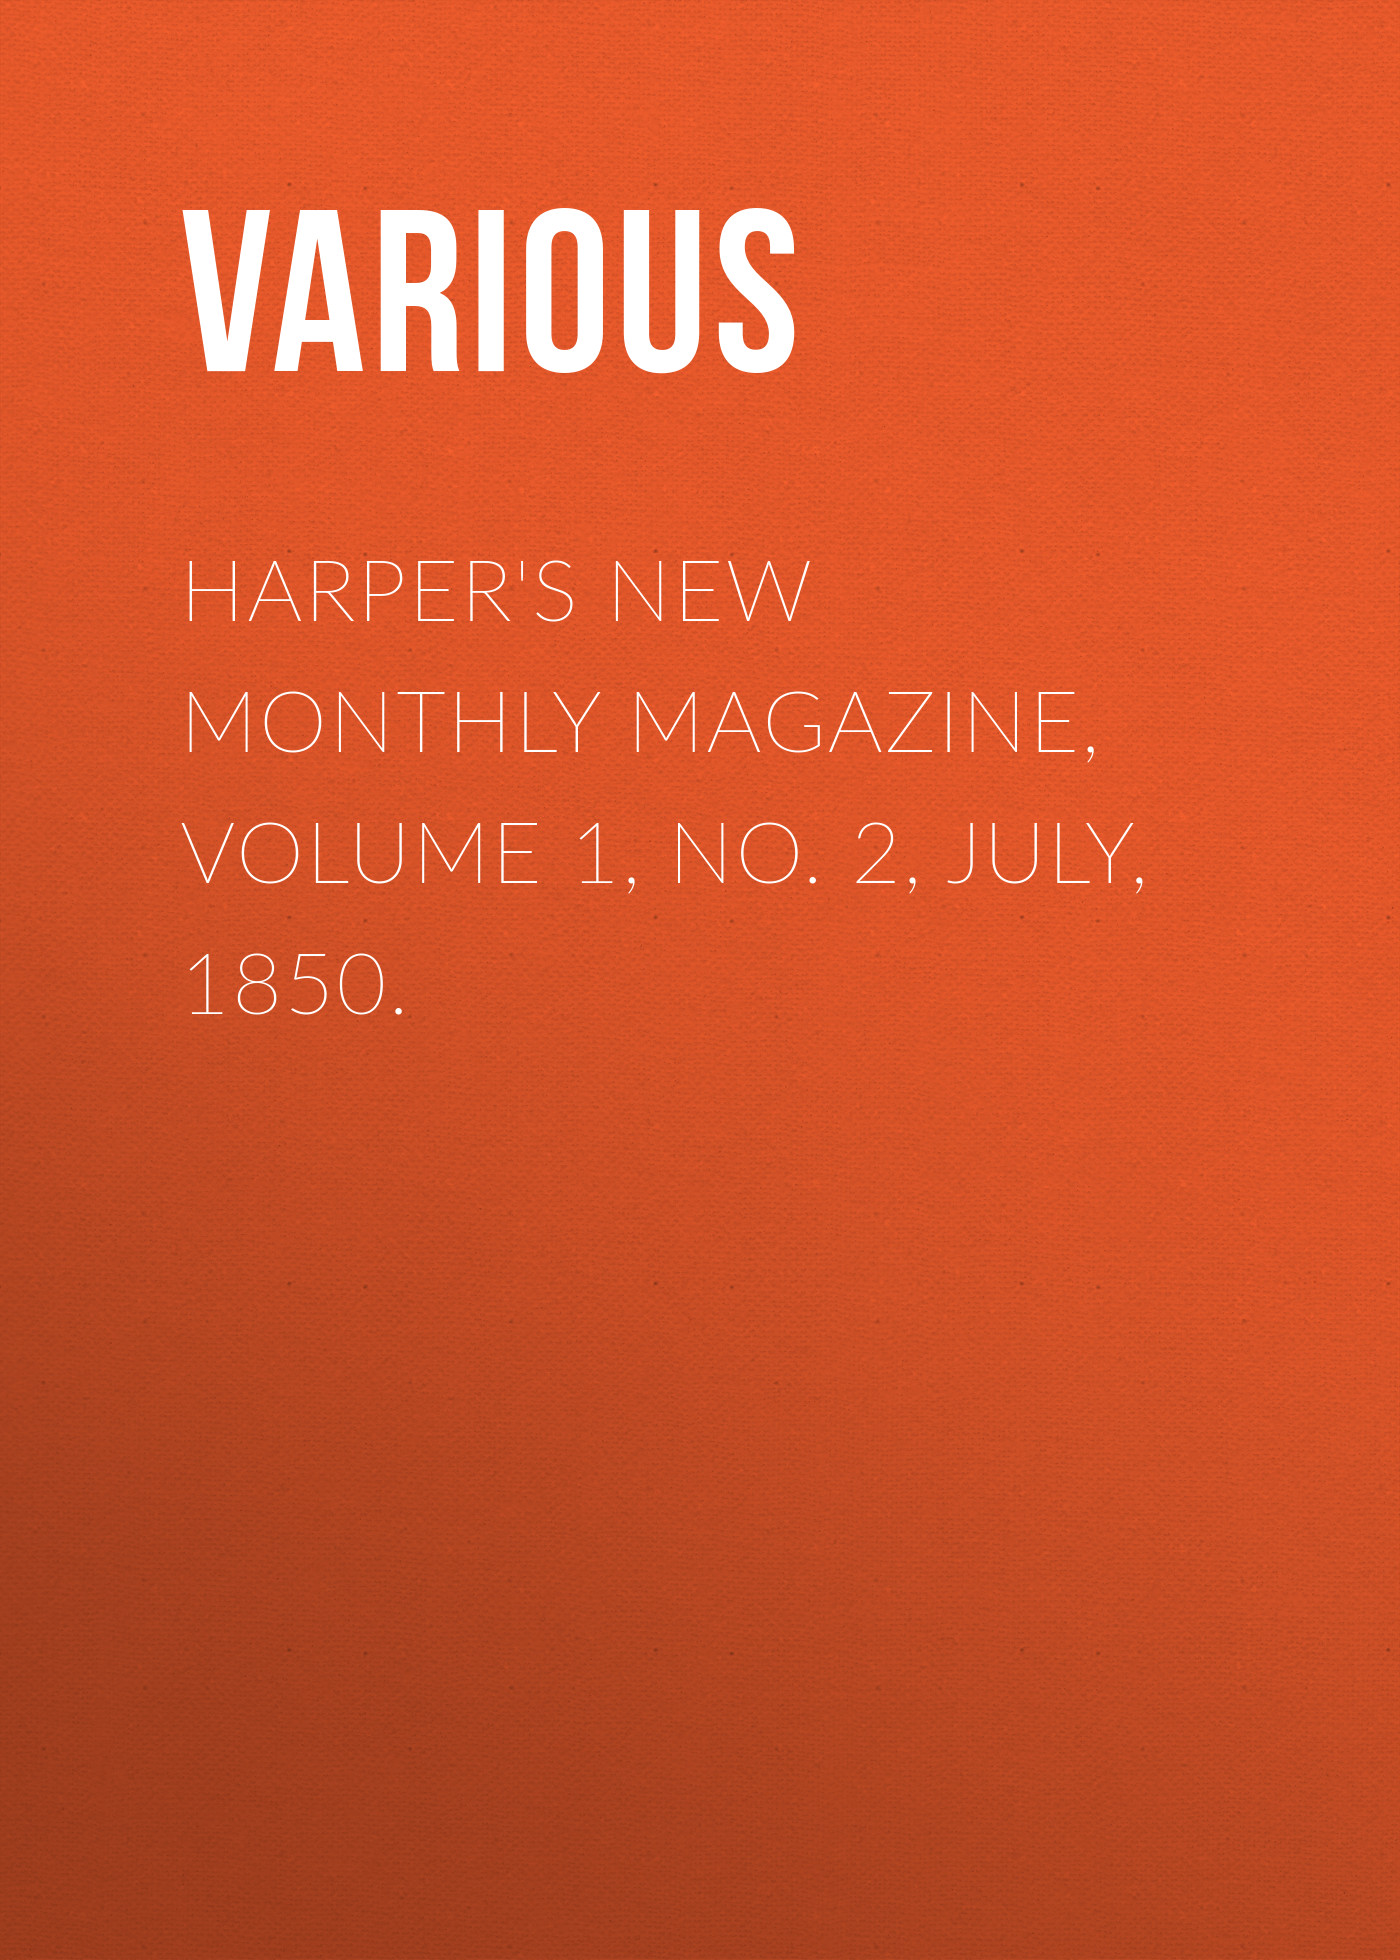 Various Harper's New Monthly Magazine, Volume 1, No. 2, July, 1850. hoodz dvd magazine issue 1